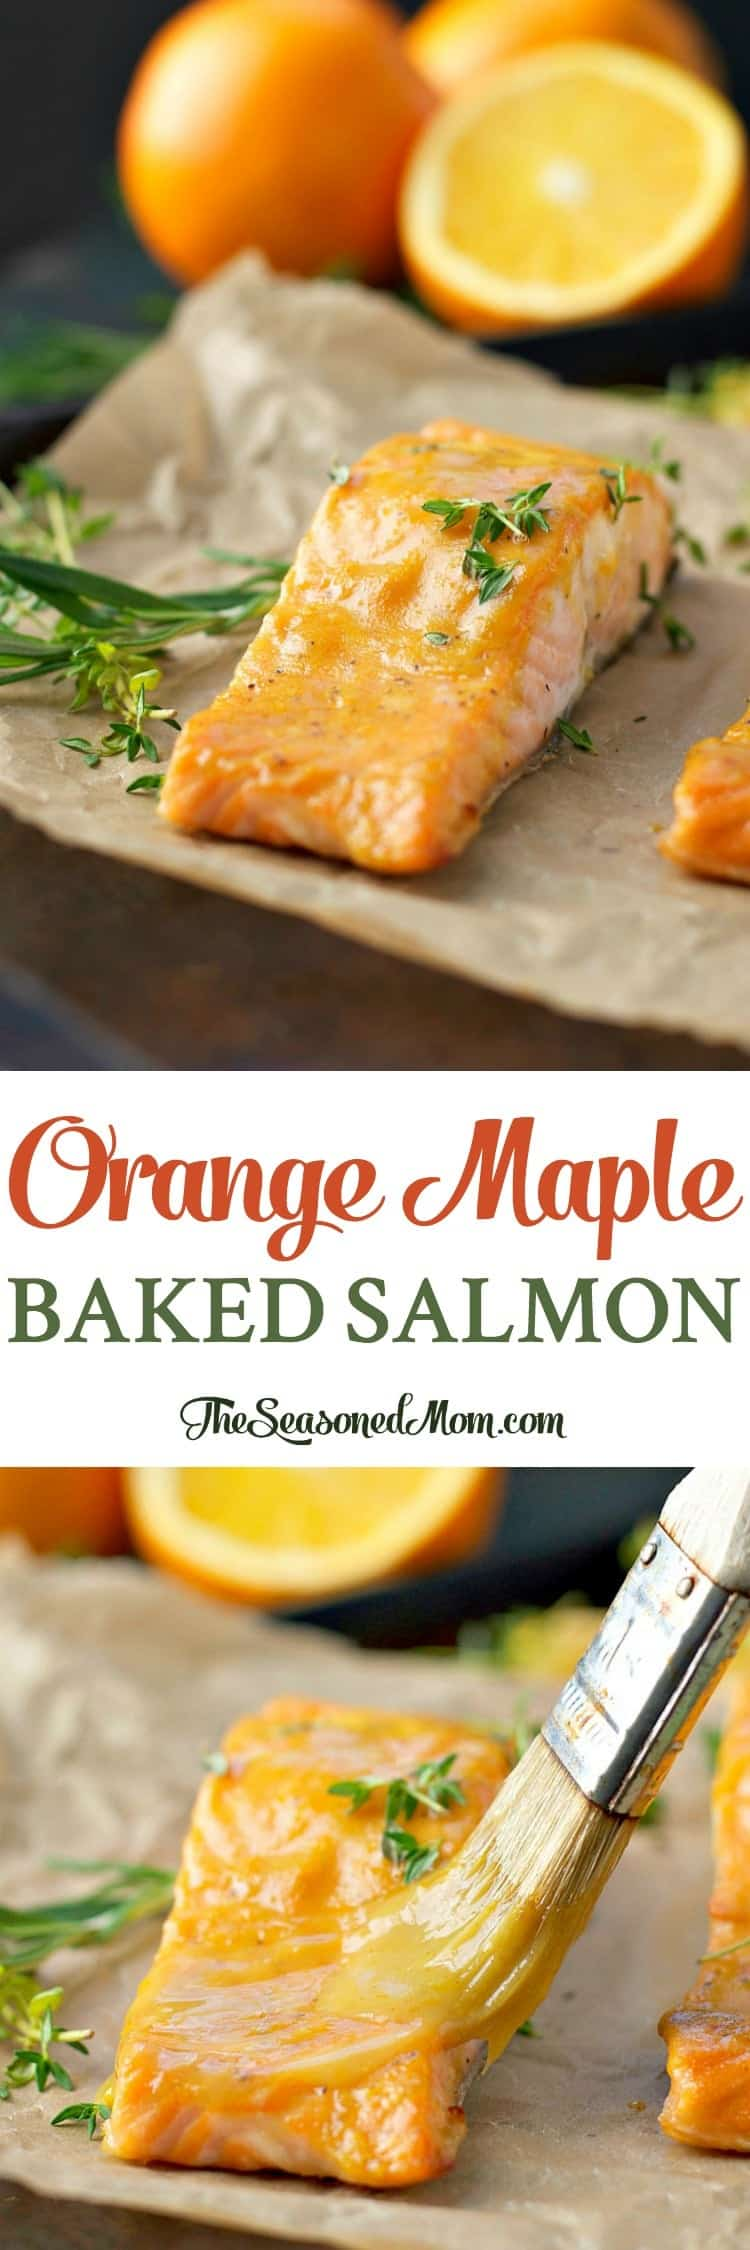 Orange maple baked salmon 700 amazon gift card giveaway for Fish dishes for dinner